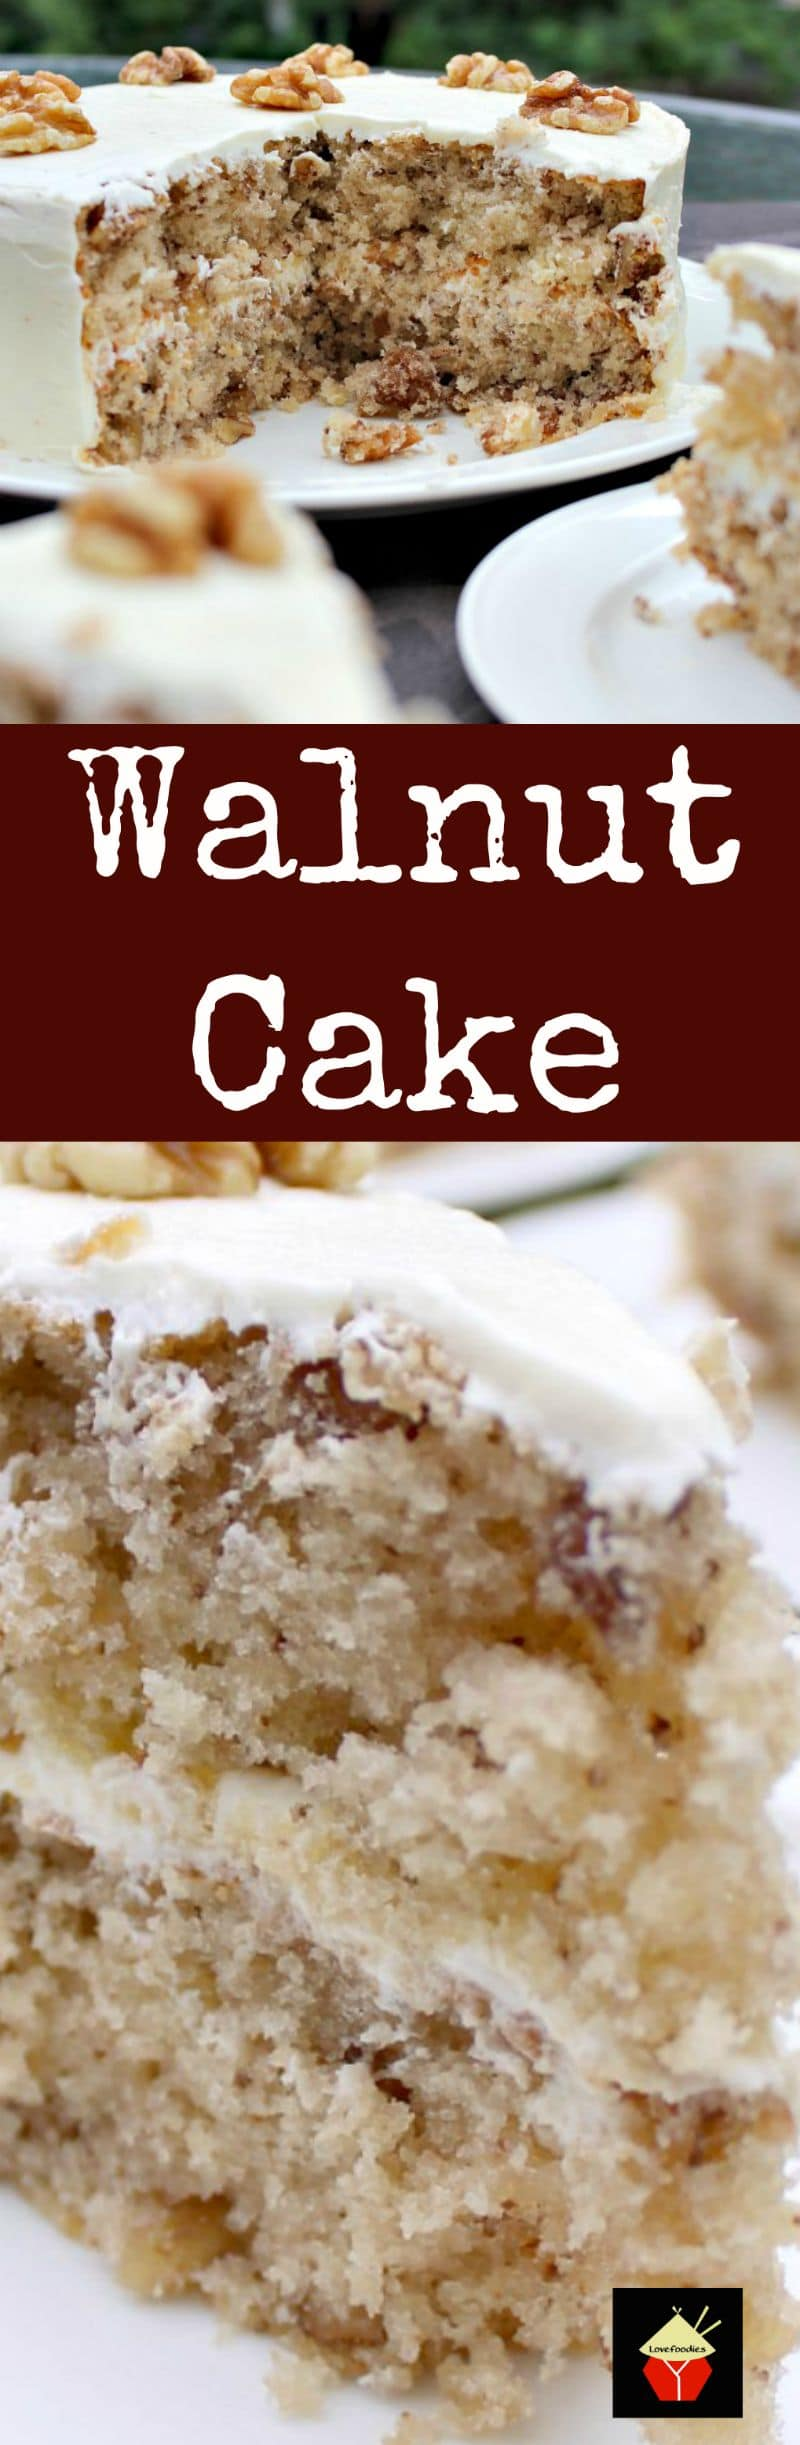 Walnut Cake is a delicious easy recipe. the cake is so soft and fluffy ...